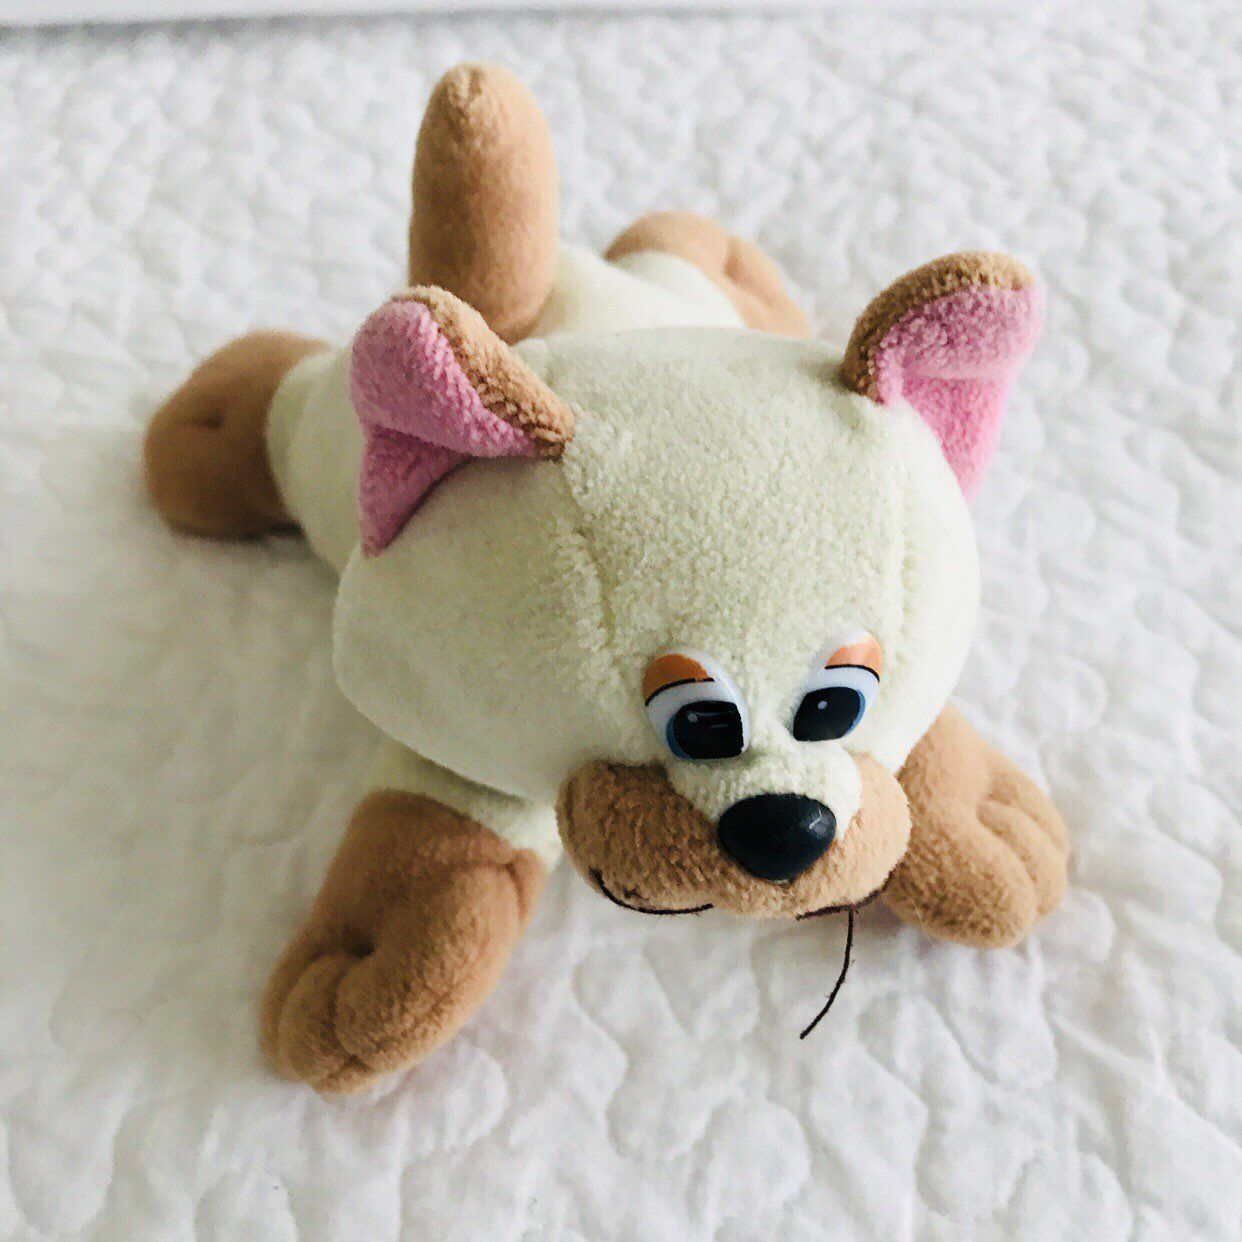 Pound Puppies Purries Plush Kitty Cat Mercari BUY & SELL THINGS